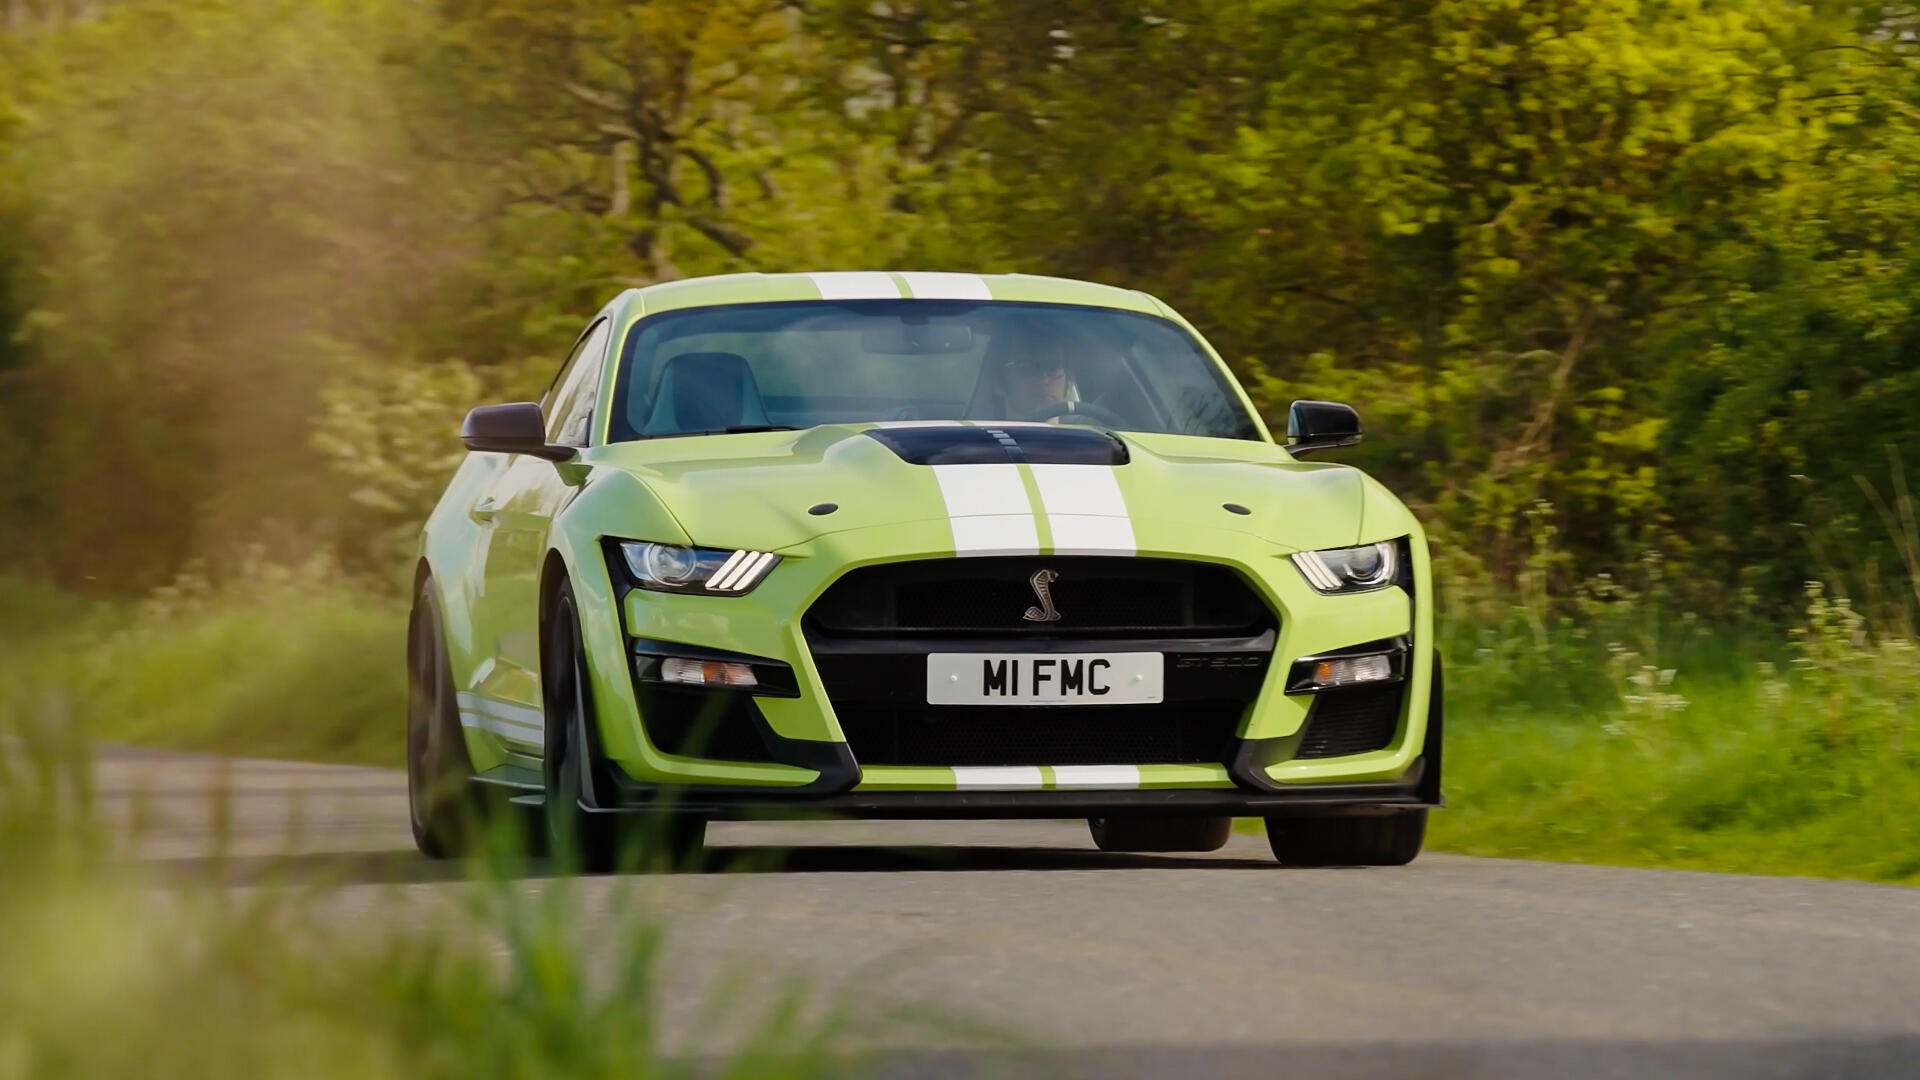 Video: The Ford Mustang Shelby GT500 is sophisticated yet obnoxiously loud